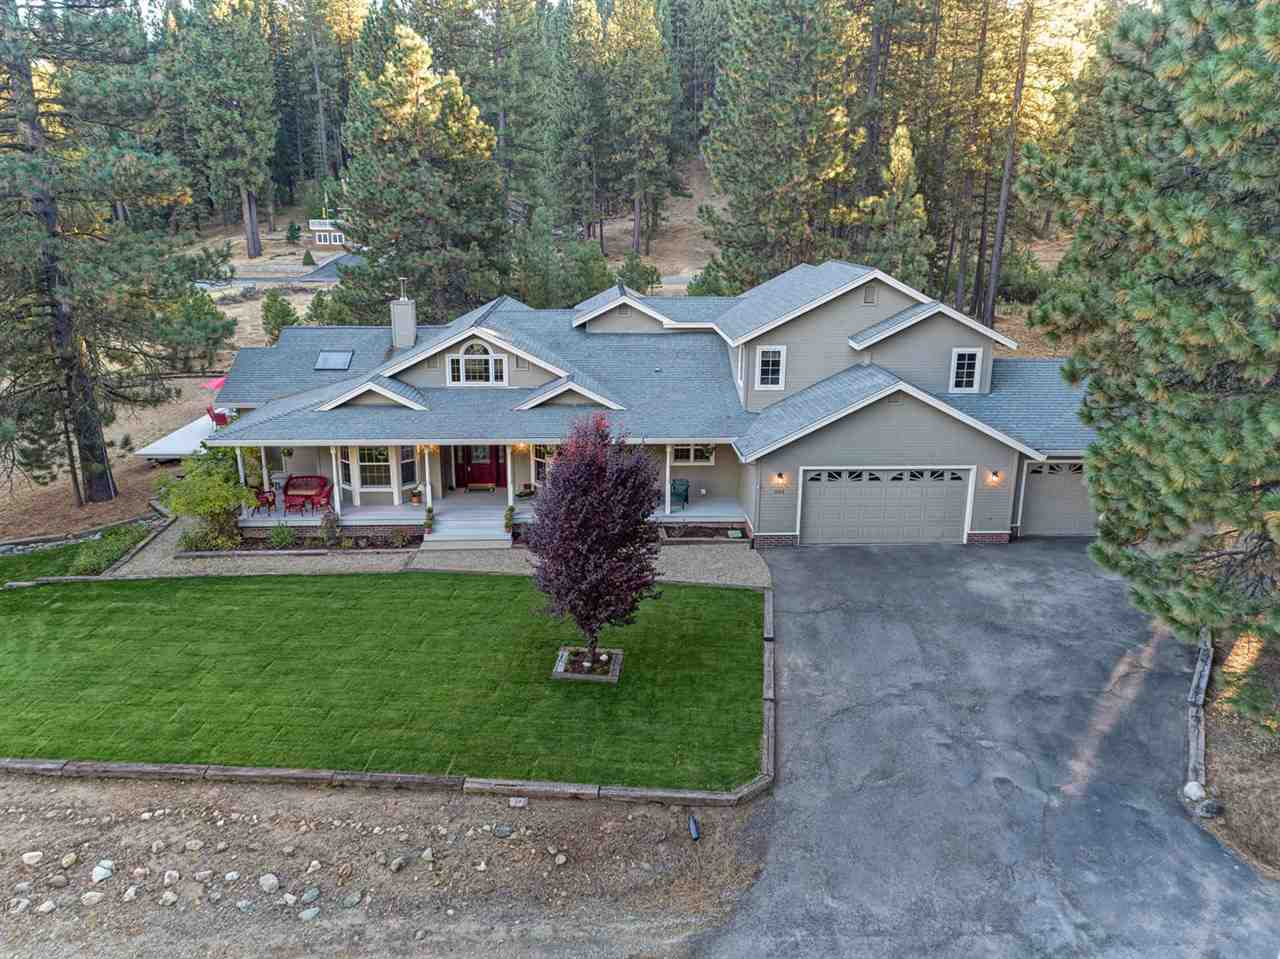 Additional photo for property listing at 1122 Miners Lane Graeagle, California 96103 United States